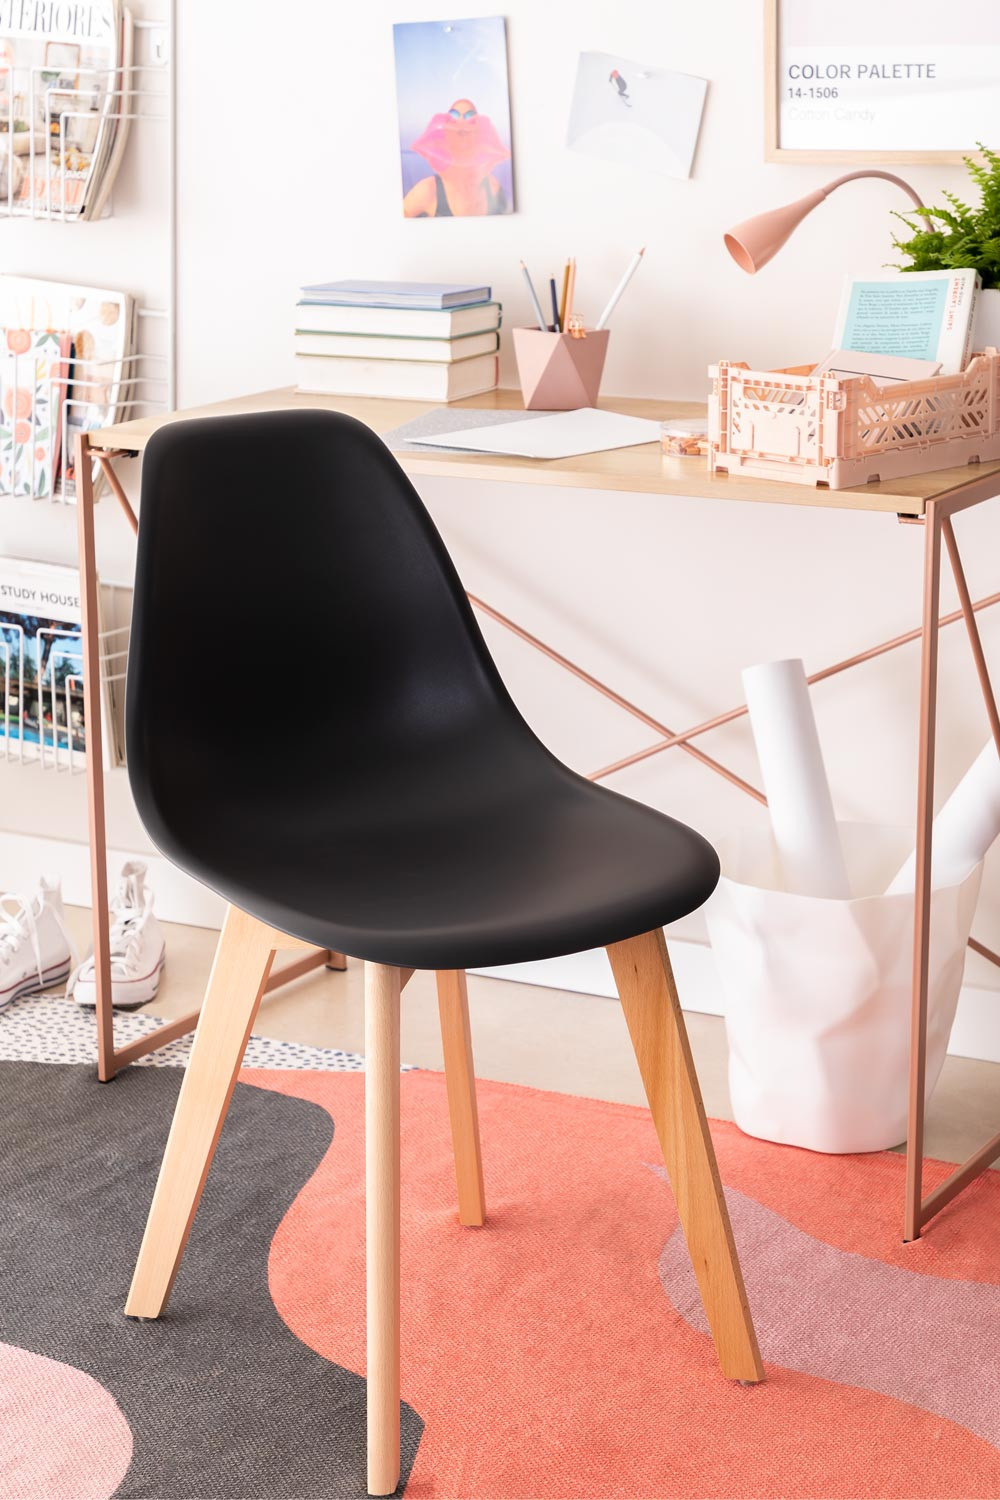 Pack of 2 Scand Scandinavian Dining Chairs, gallery image 1